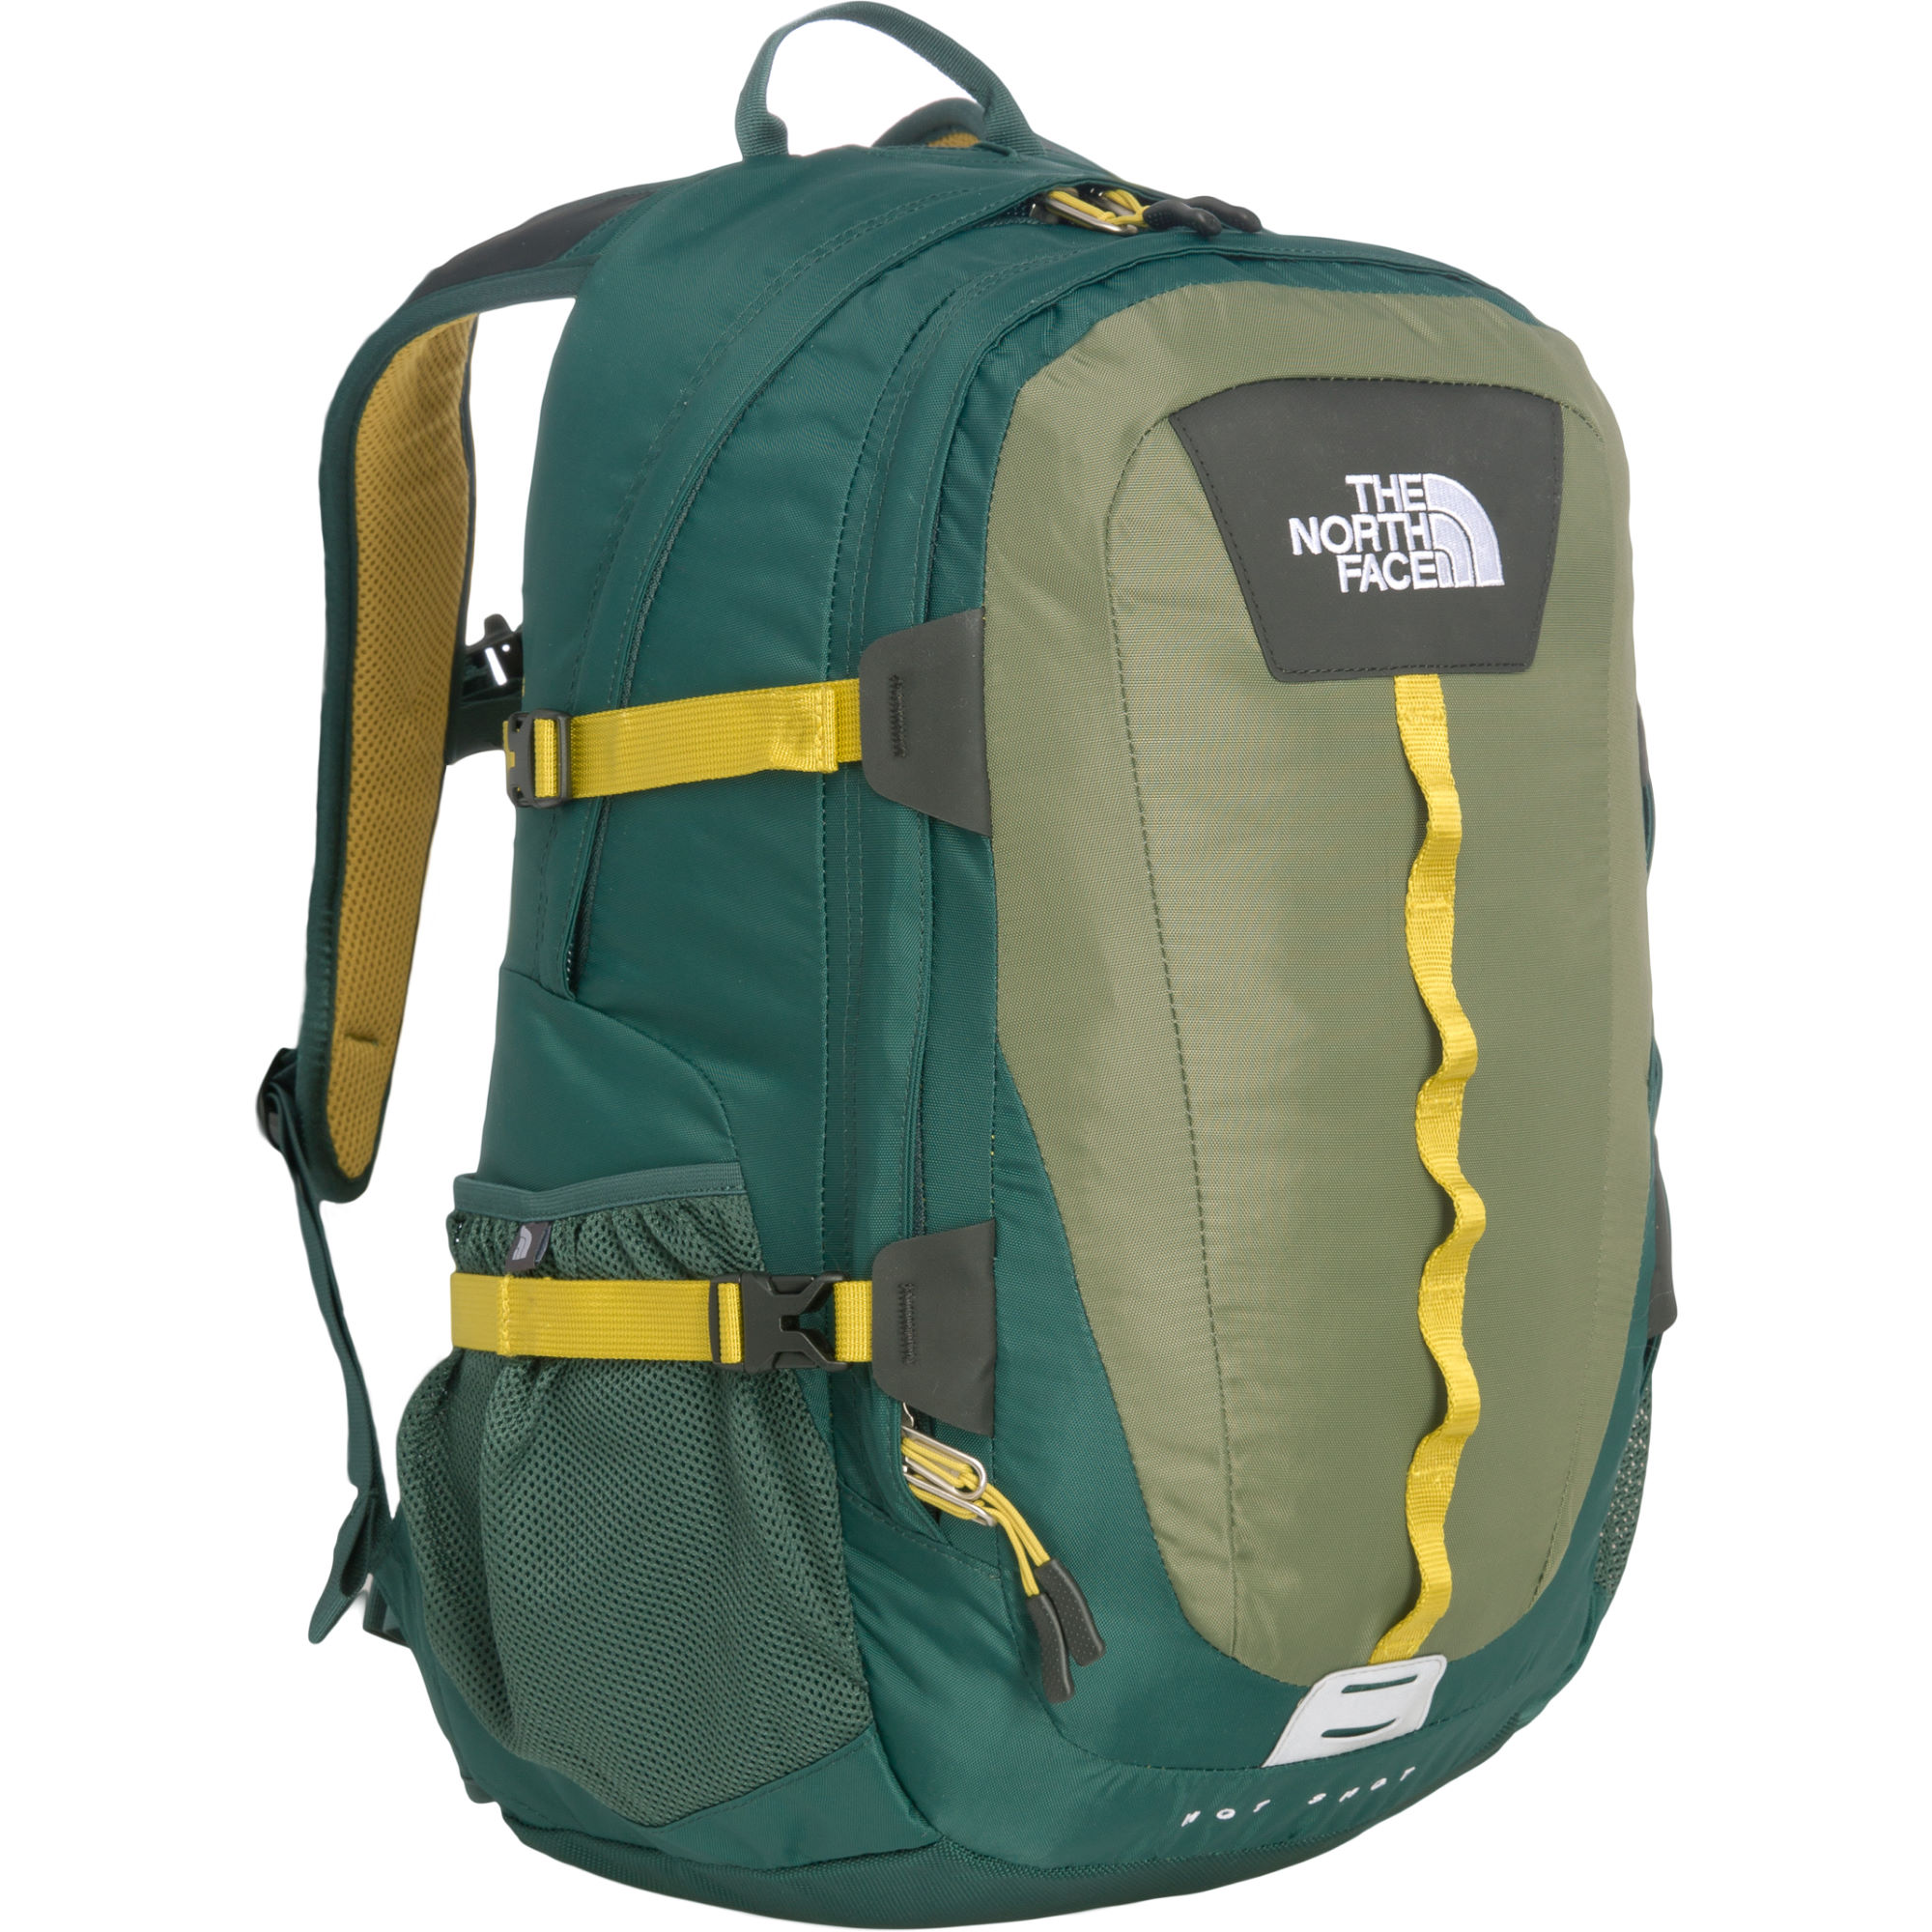 from Rocky the north face hot shot